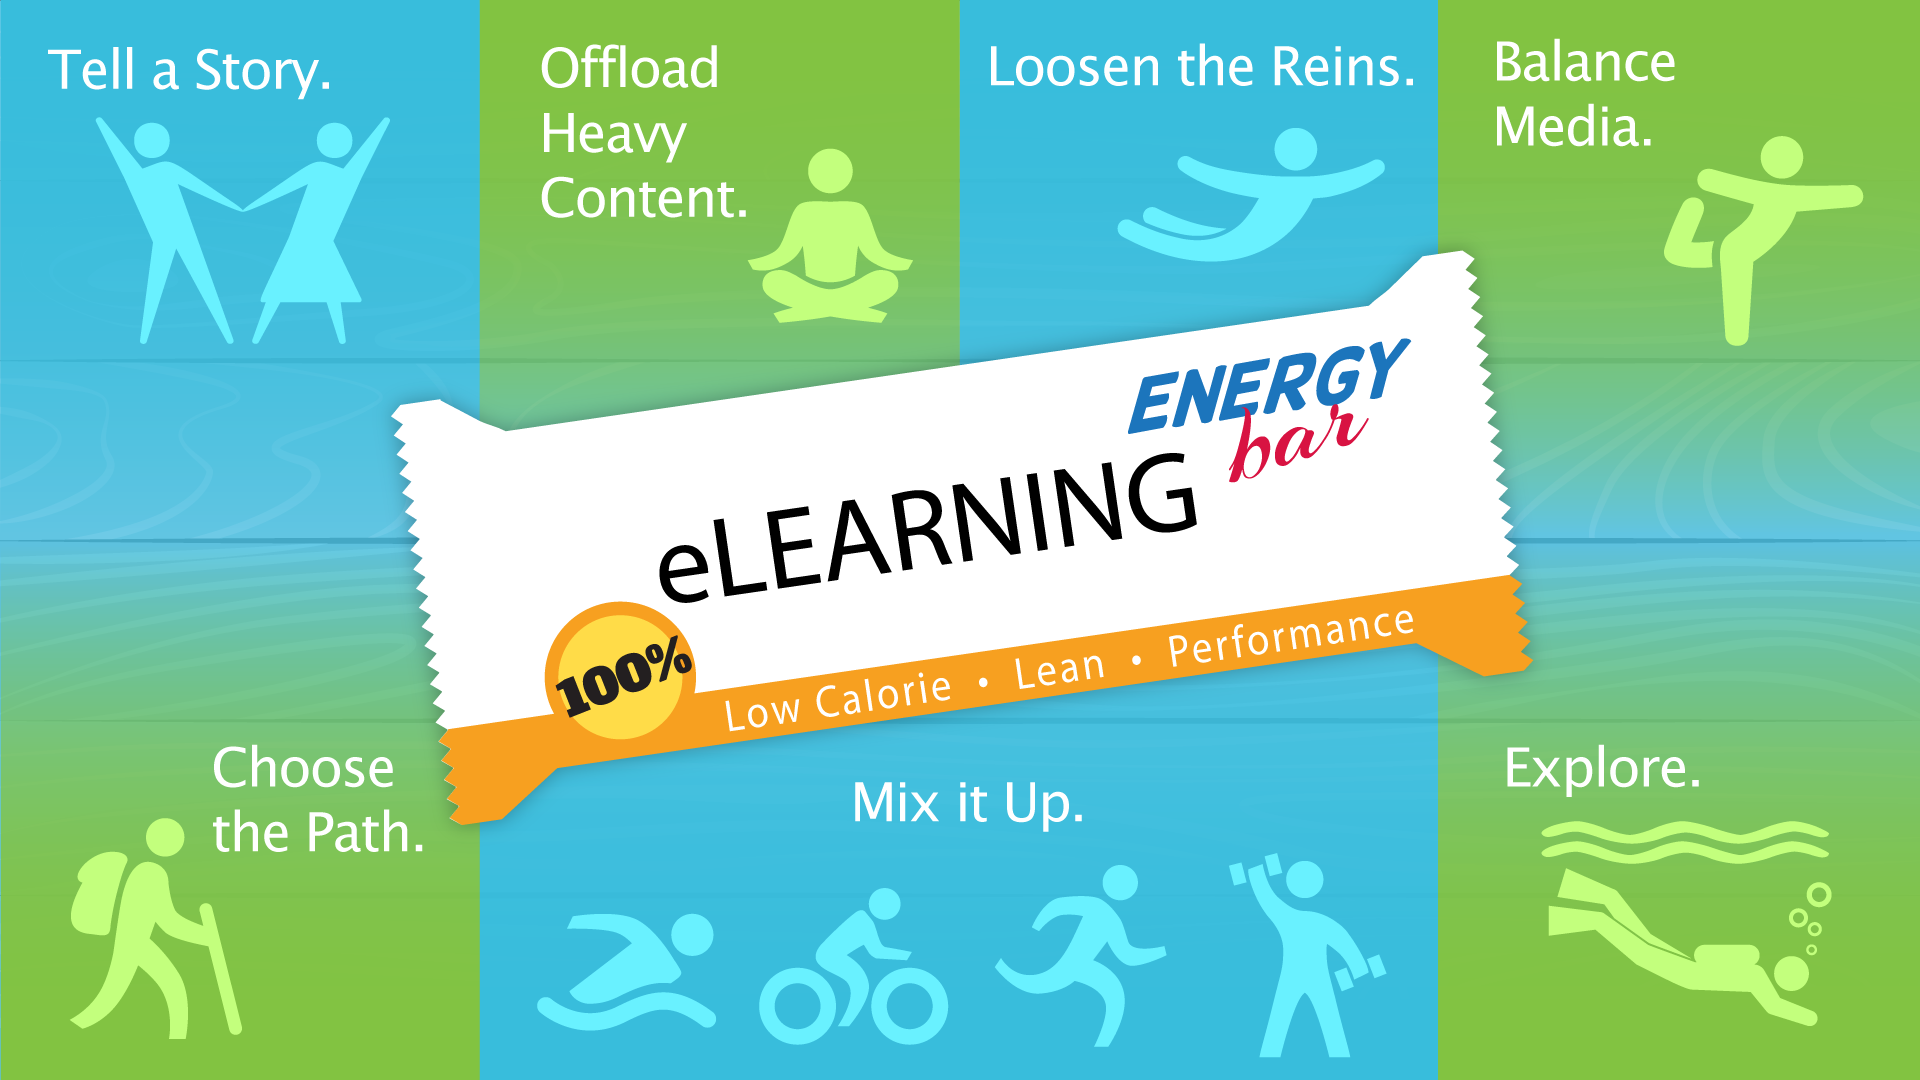 e-learning energy bar graphic